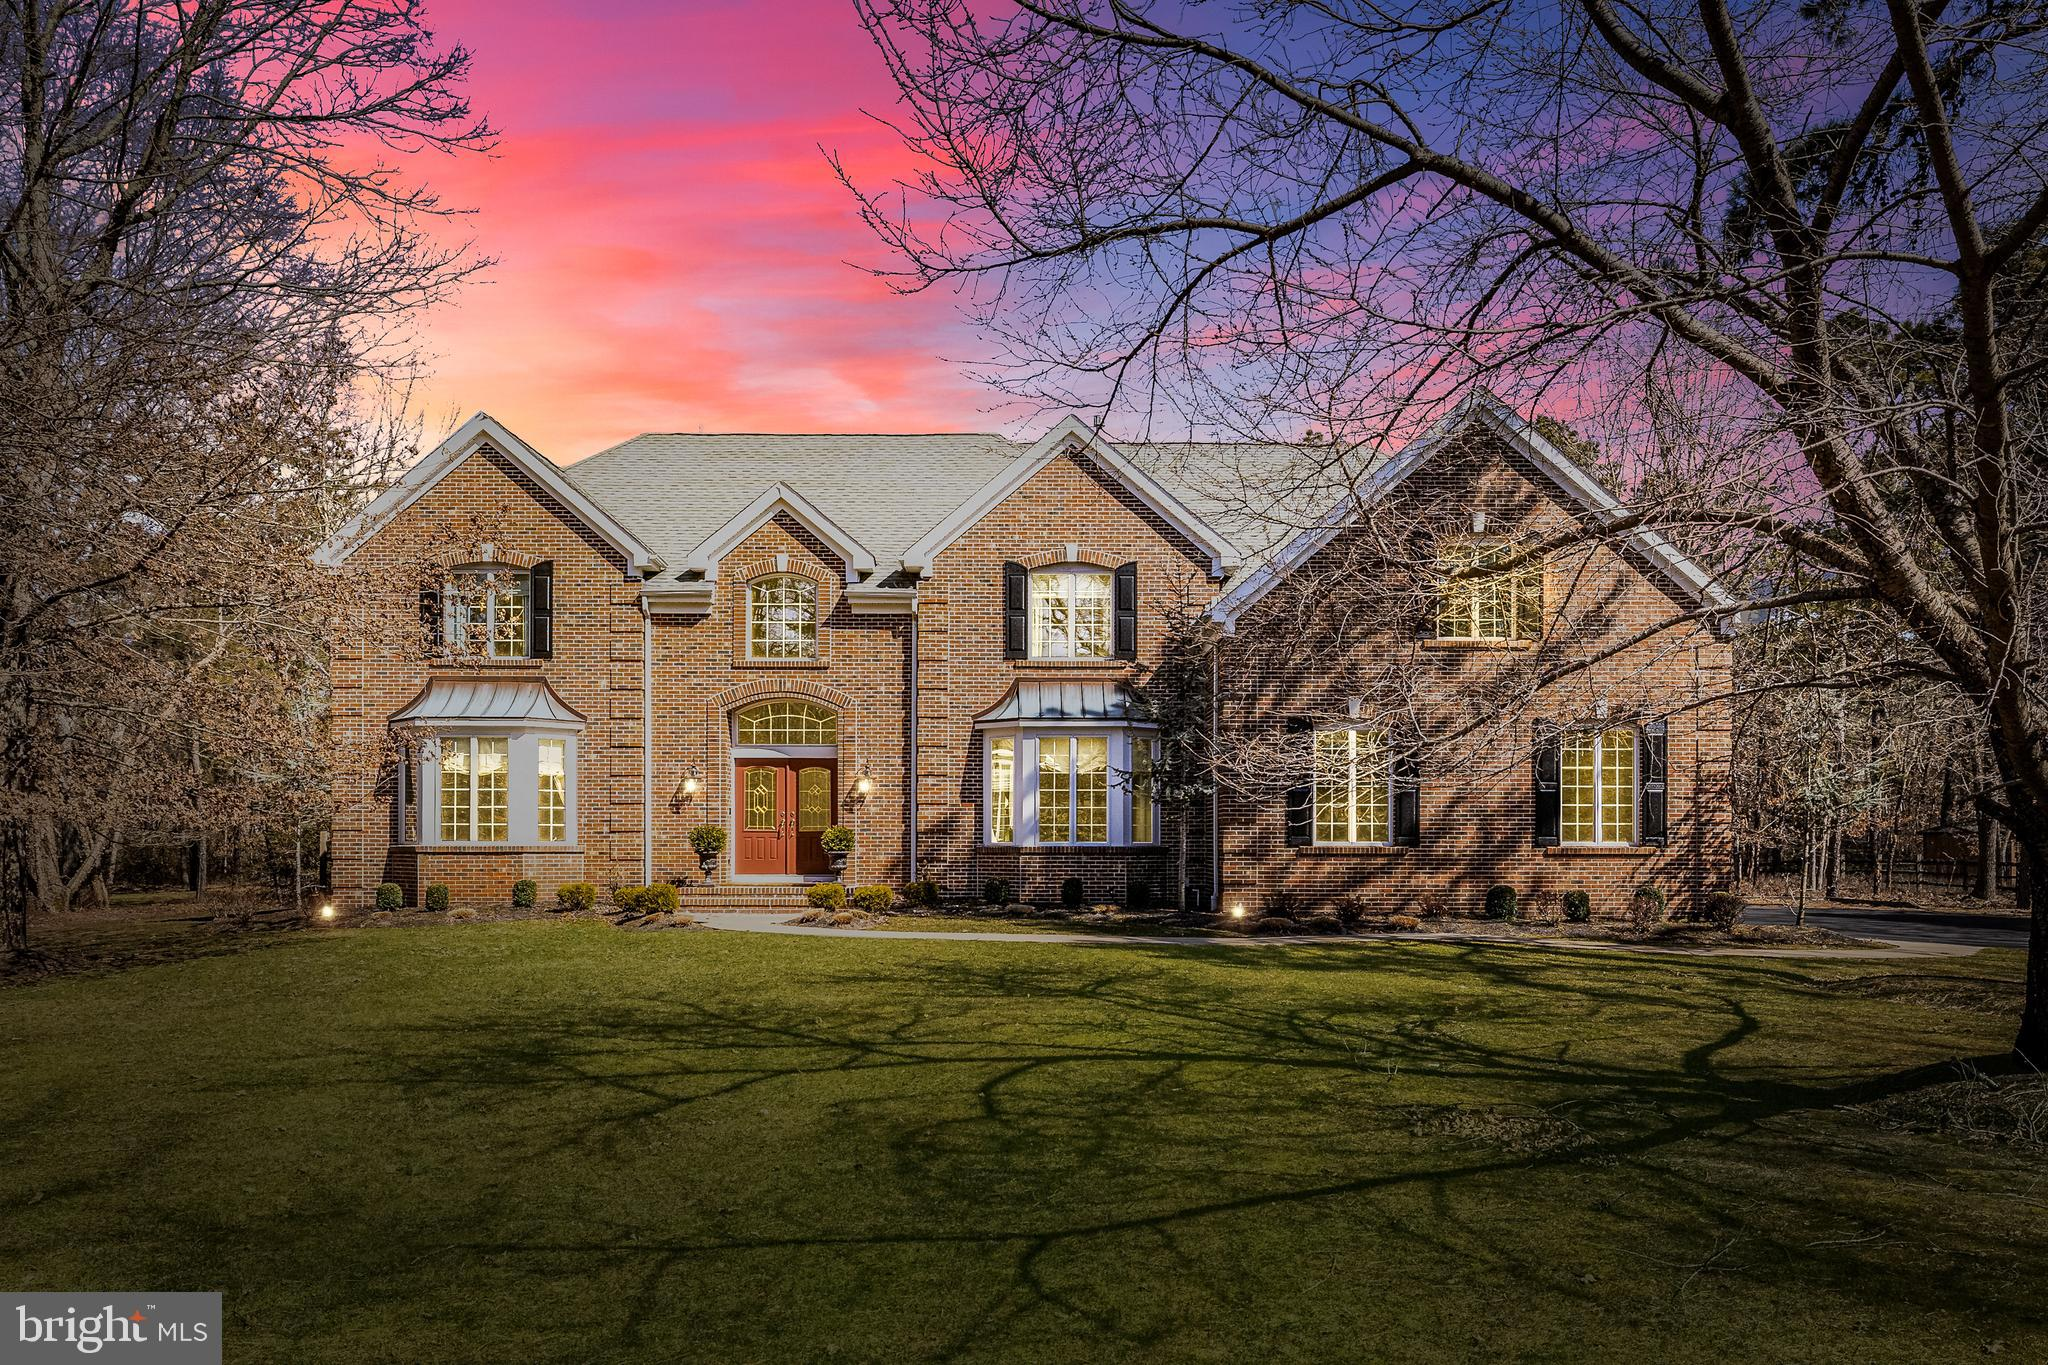 This fine Gary Gardner built executive home has everything going for it. The setting is exceptional, within prestigious enclave of Elderberry Cove.  This beauty is sited on almost 2 acres of wooded privacy, surrounded by extensive landscaping and manicured lawn areas, with an impressive approach from the street.  The deep setback allows for a long winding driveway leading to a side turned 3 car garage.  The Georgian styled brick front exudes a grand and welcoming style.  A meandering front walkway leads to a recessed double front door with Palladian window.  Multiple roof lines and quoined corners add interest and detail to the home.  The rear yard is enclosed by a split rail fence in perfect keeping with the natural setting.  This huge rear yard includes a custom hardscape patio and loads of space for you to extend the imagination into the outdoor living area of your dreams. There's already a large hot tub on the patio waiting for your enjoyment.  The interior of this 4BR, 2.5 bath home has al the amenities and fine finishes you'd expect in a home of this caliber.  Soaring and vaulted ceilings, lots of large and well -placed windows for a bright and warm environment, an extensive array of custom millwork including crown moldings, chair railings, wainscotings and window/door trims; hardwood flooring, plush pile carpeting and ceramic tile flooring throughout; designer paint and wall treatments with coordinating window dressings; stylish and grand light fixtures; skylights; peninsula styled Kitchen with cherry wood cabinetry, granite countertops, full appliance package; Breakfast Room with cabinet buffet counter; Family Room with floor to ceiling stone fireplace and wetbar; Sunroom with French Door entry; first floor Study; upper level balcony overlooks Foyer & Family Room; lavish Owner's ensuite with Sitting Room & abundant closet space including w/in closet; huge tiled bath with whirlpool tub, oversized his/her vanities, stall shower; 2 remaining large bedrooms plus